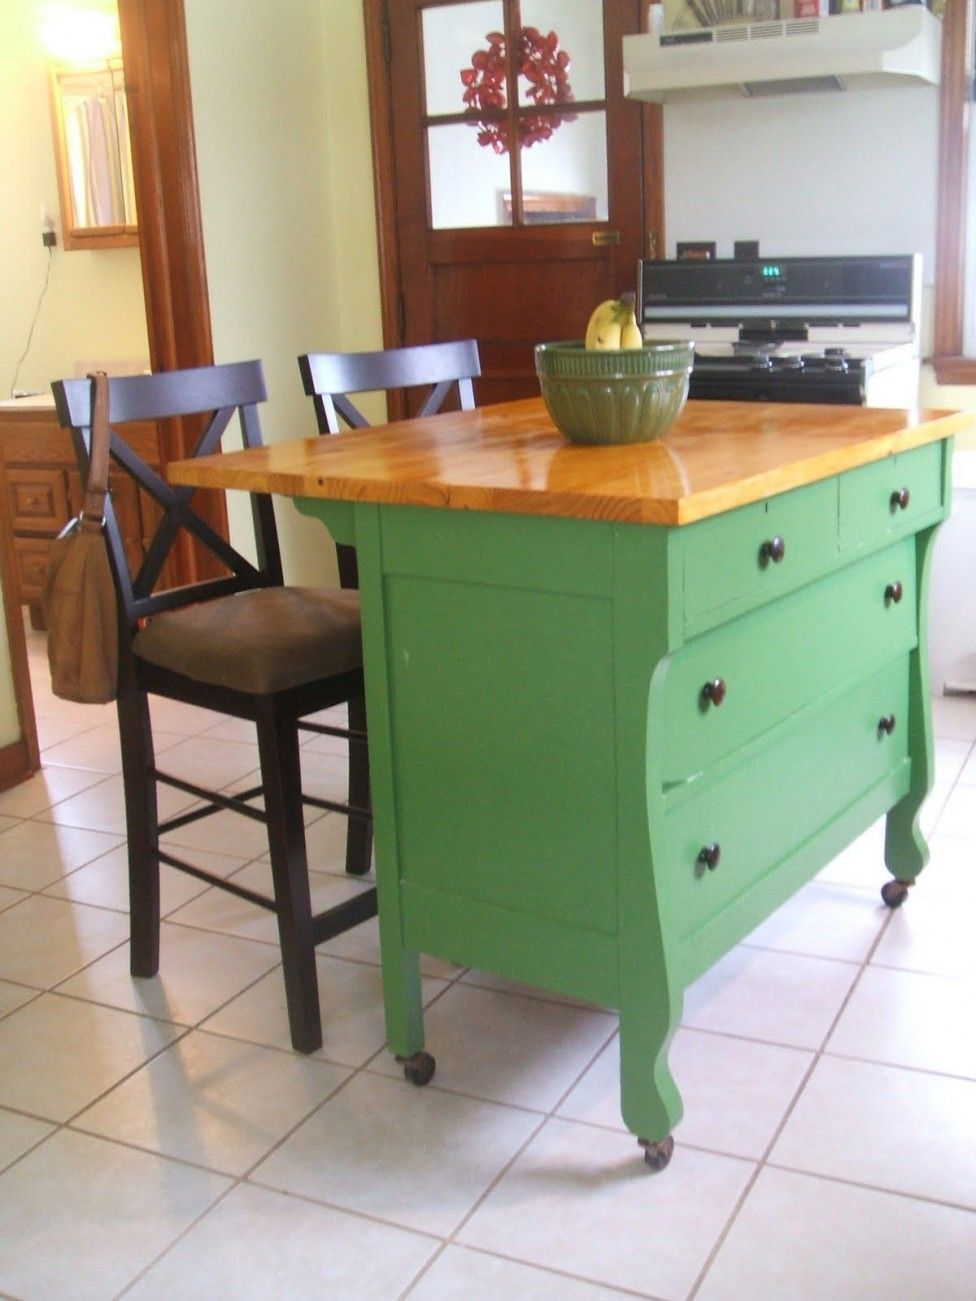 kitchen islands ideas for modern kitchen design small and portable kitchen island eas kitche on kitchen island ideas small layout id=39984